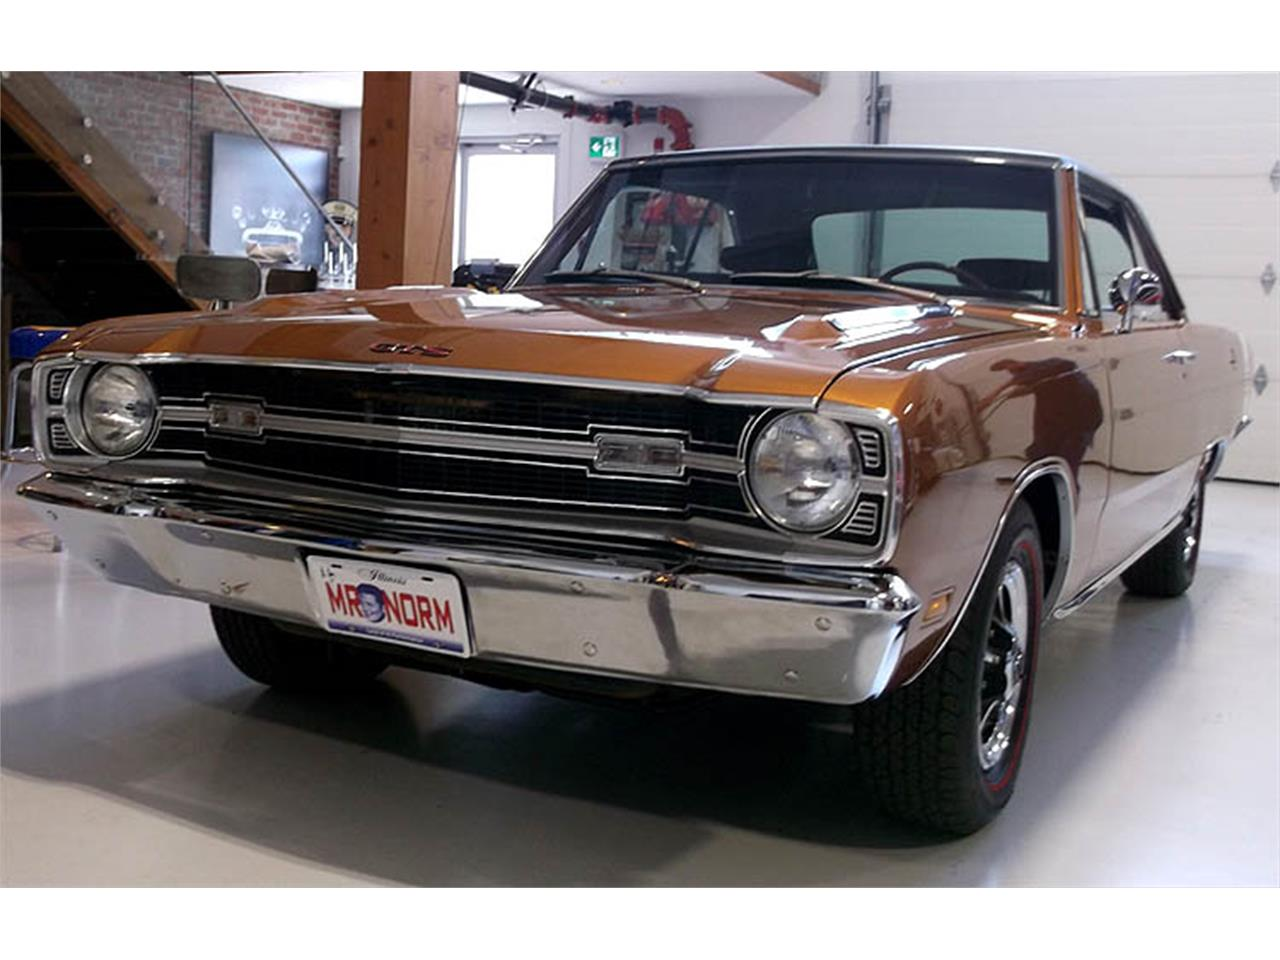 Large Picture of Classic 1969 Dart GTS located in British Columbia - $77,500.00 Offered by a Private Seller - Q0YM